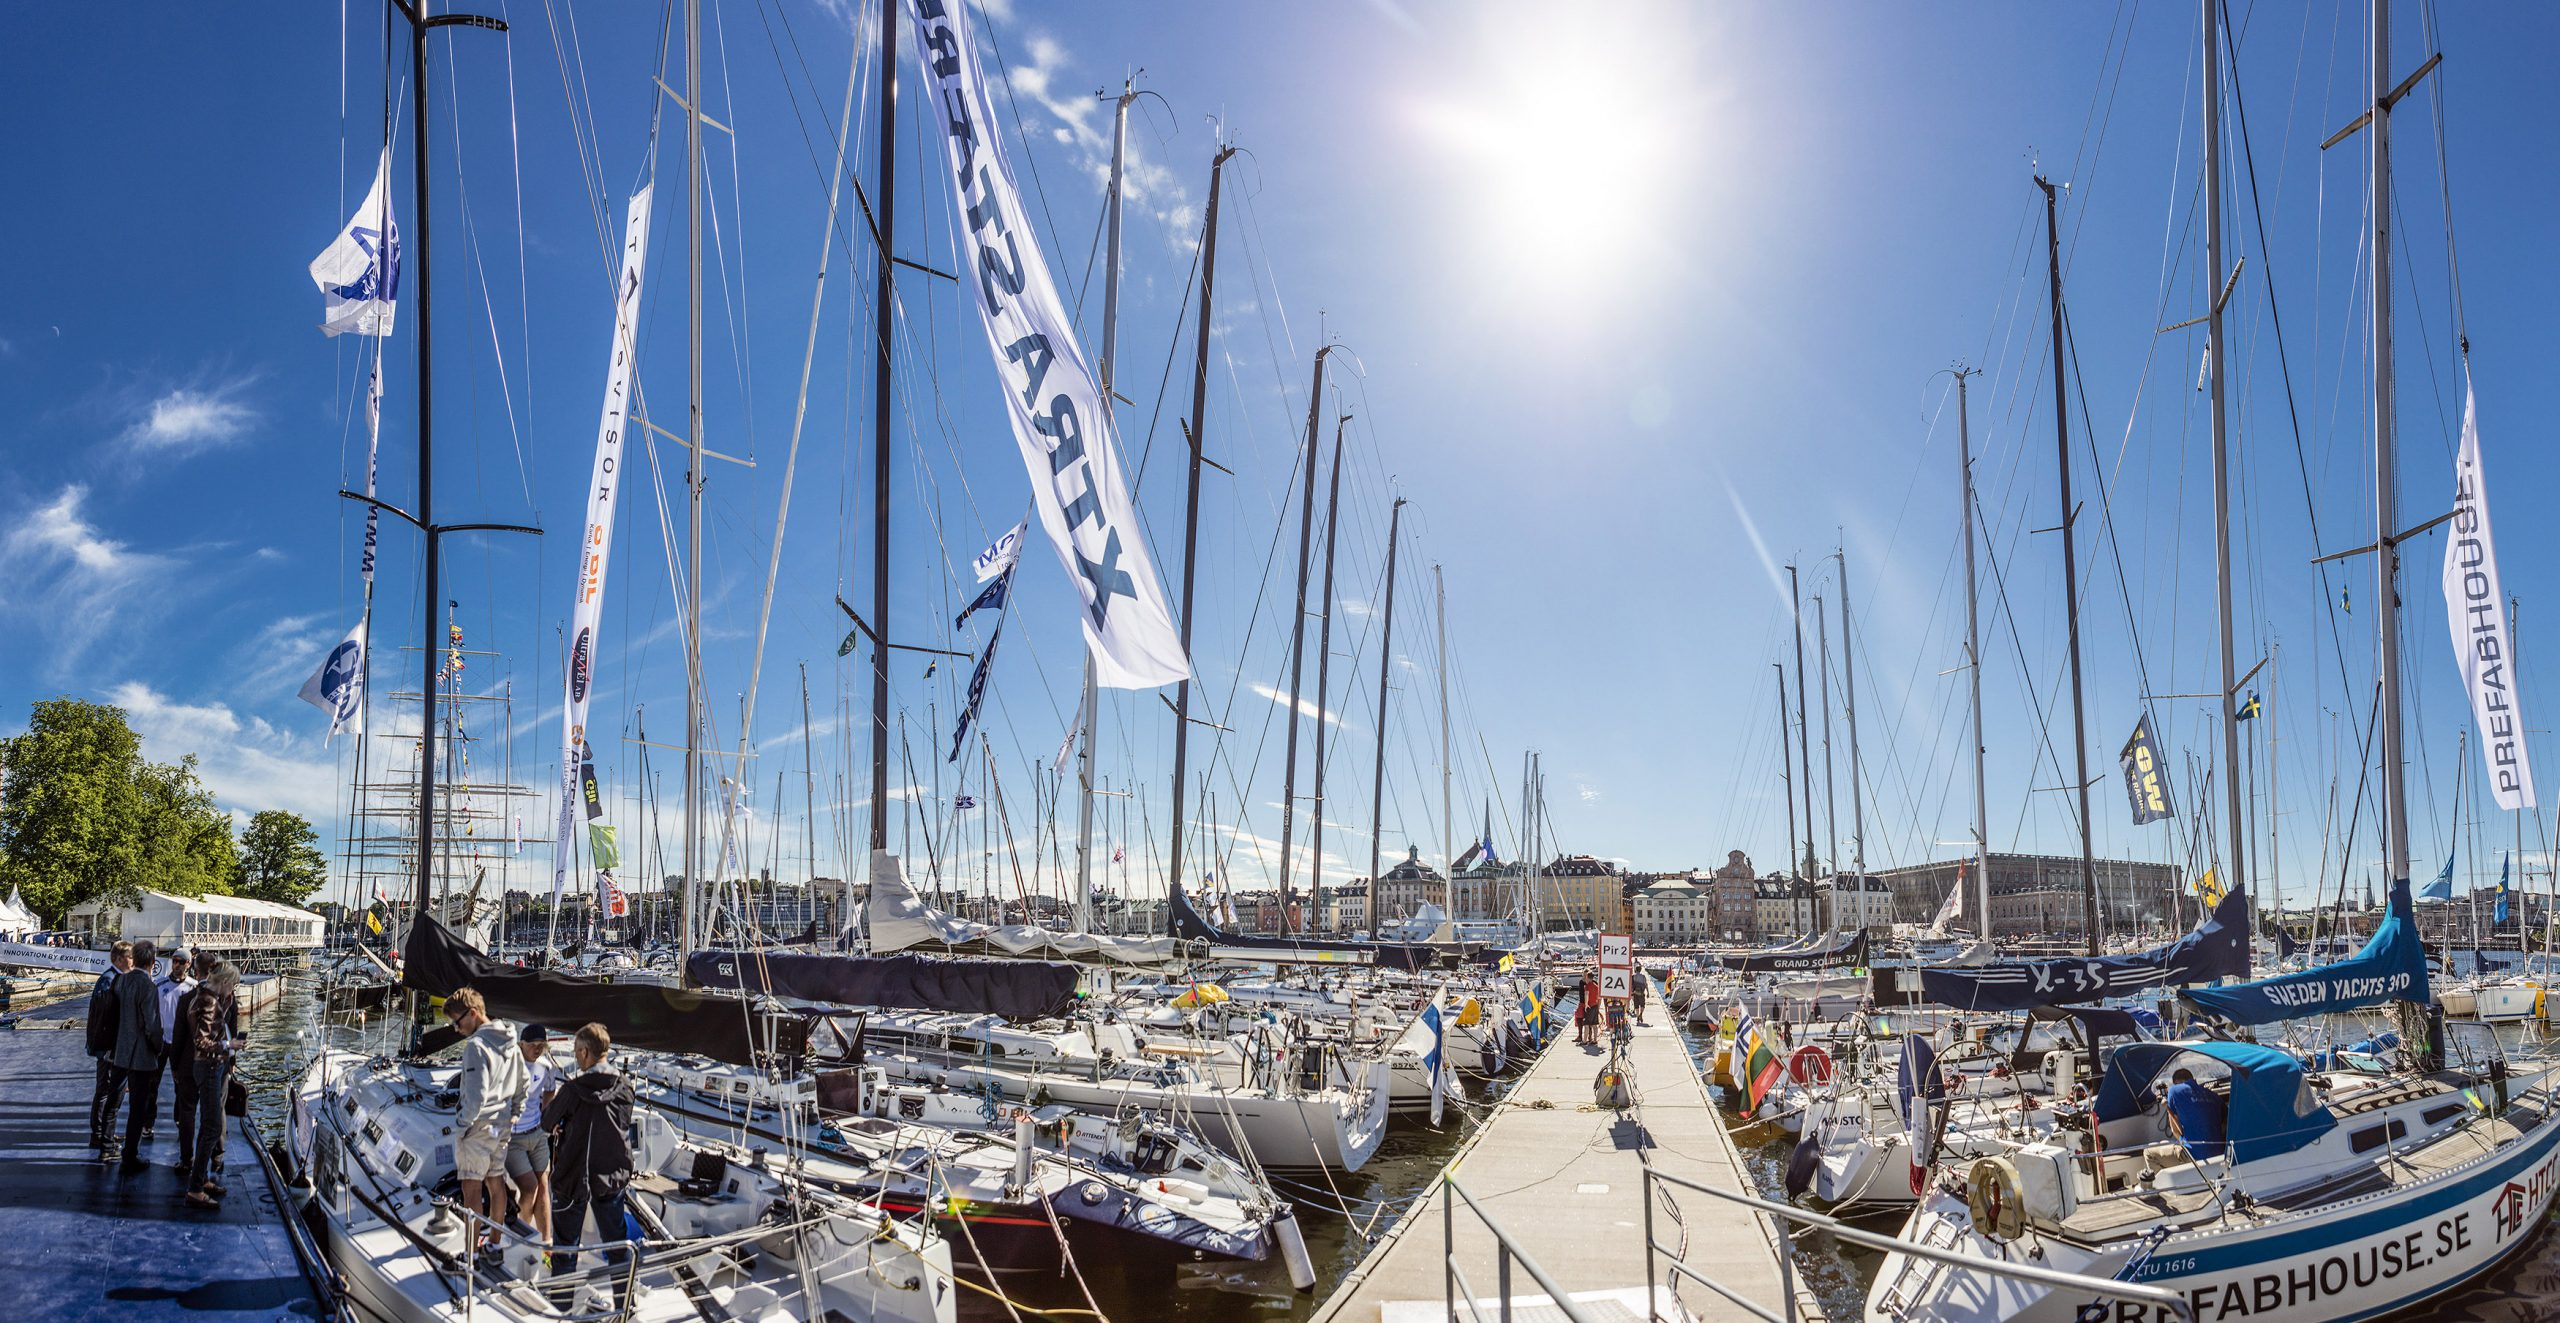 Competitors gather for the Round Gotland - ÅF Offshore Race 2017.